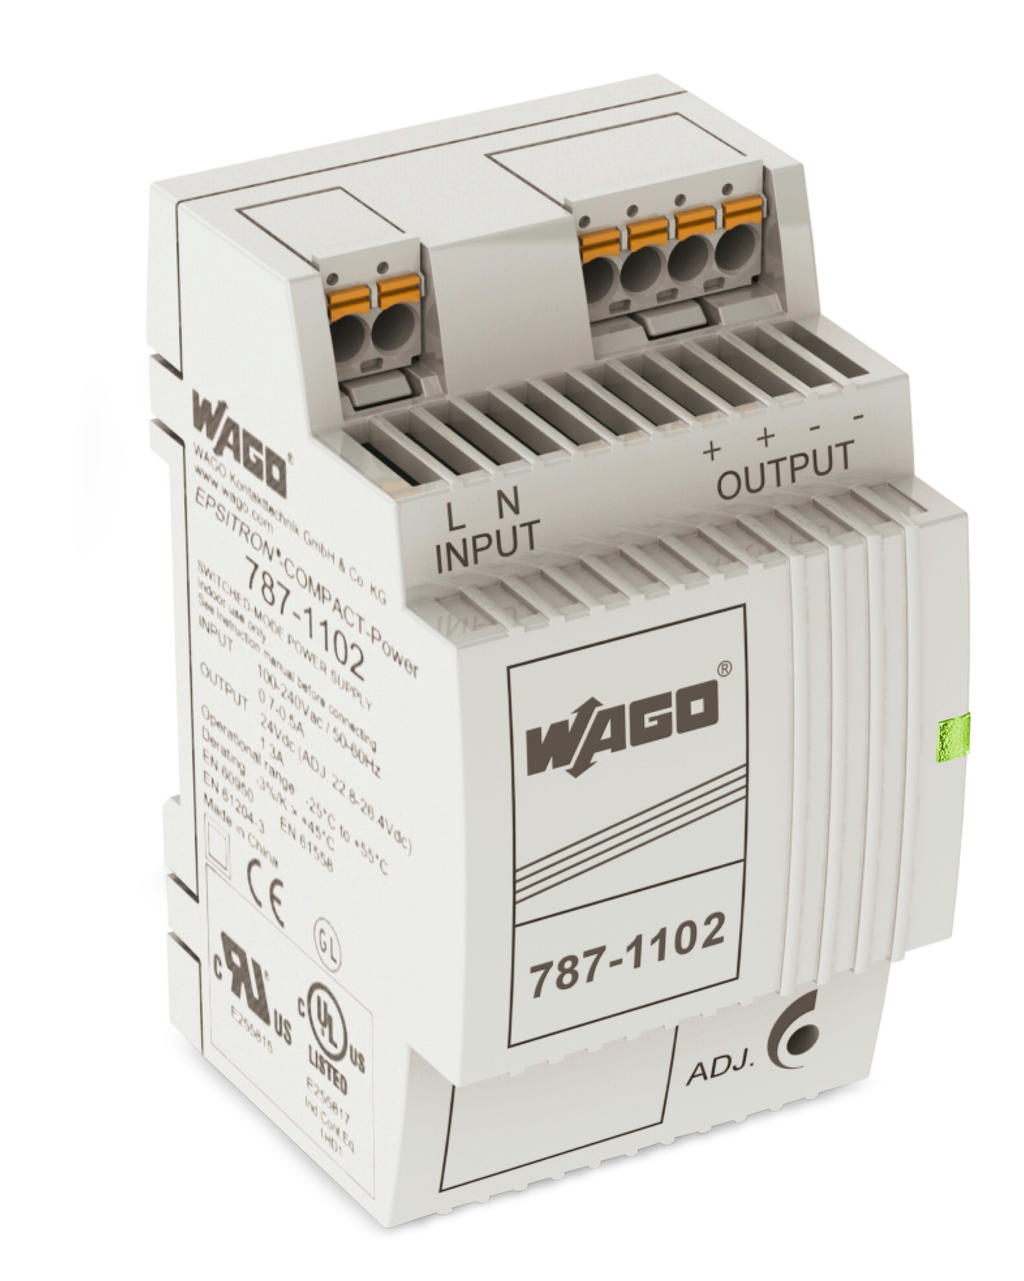 Wago Epsitron Compact Power Supply 787 1102 Electrical Breakers Wiring As Well Circuit Breaker Panel Labels Single Phase Output Voltage 24 Vdc 13 A With Picomax Connector